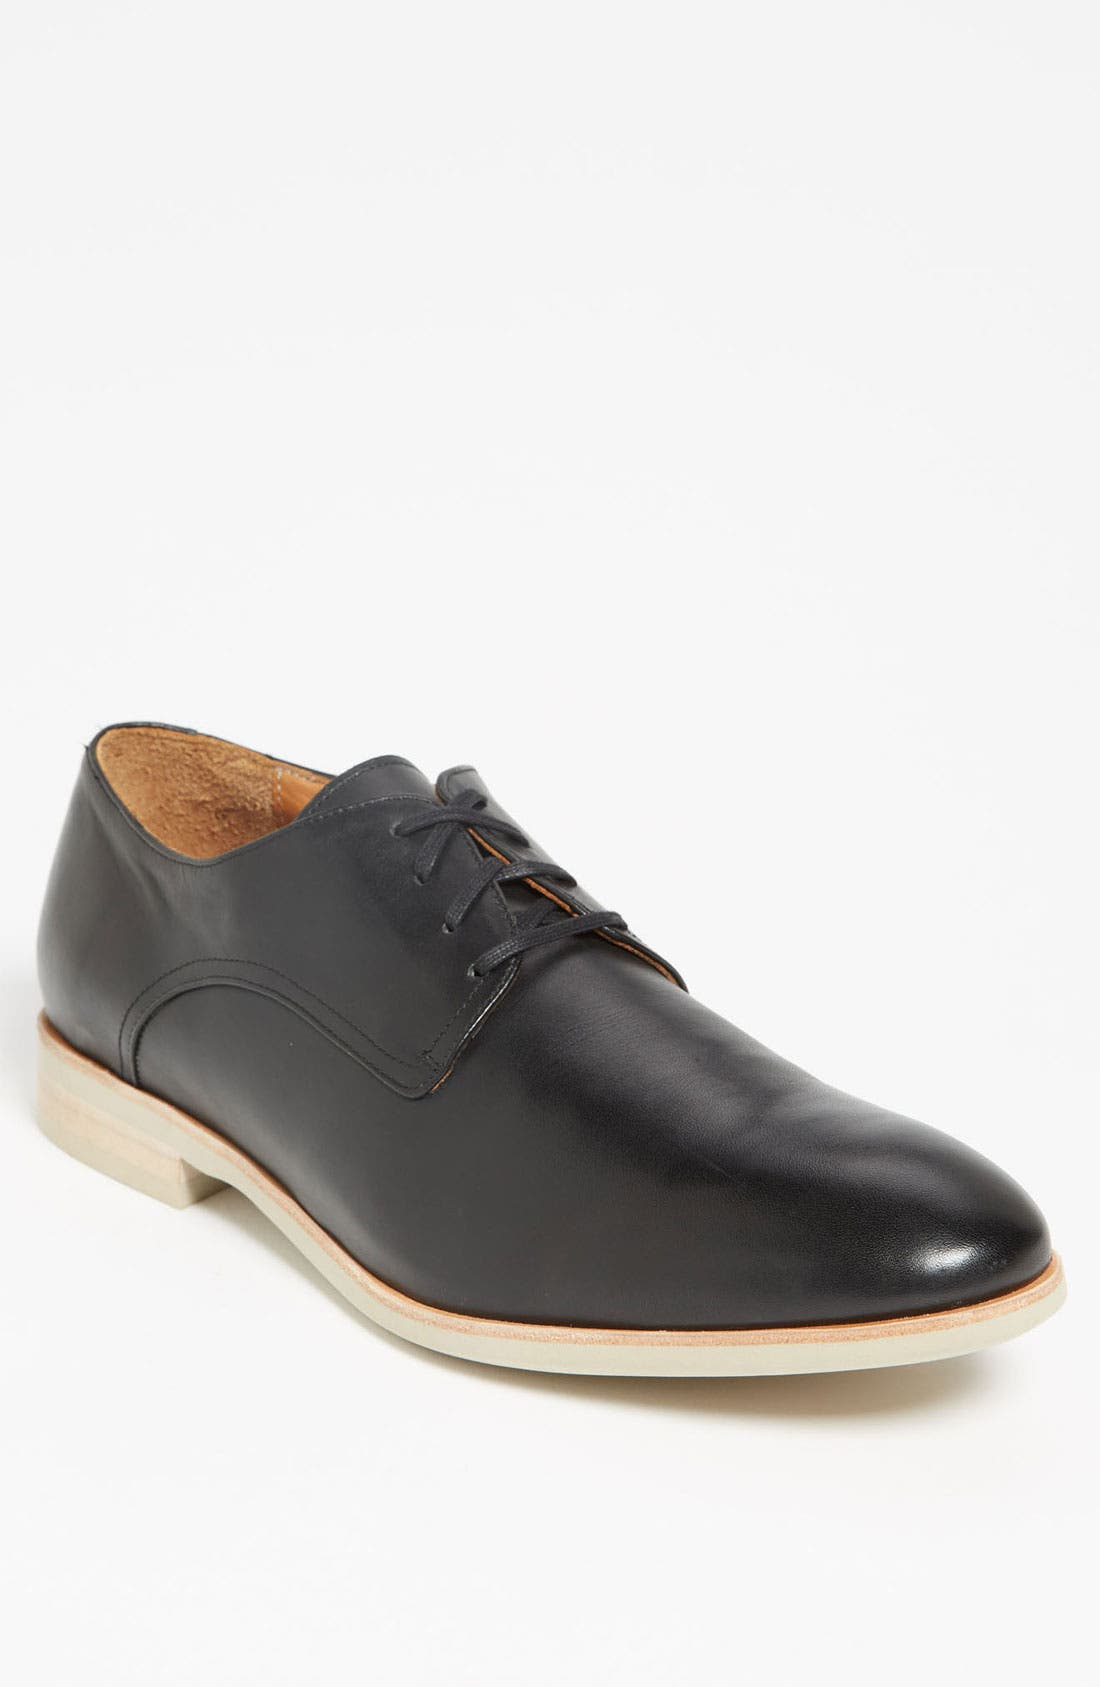 Main Image - Maison Forte 'Cannes' Plain Toe Derby